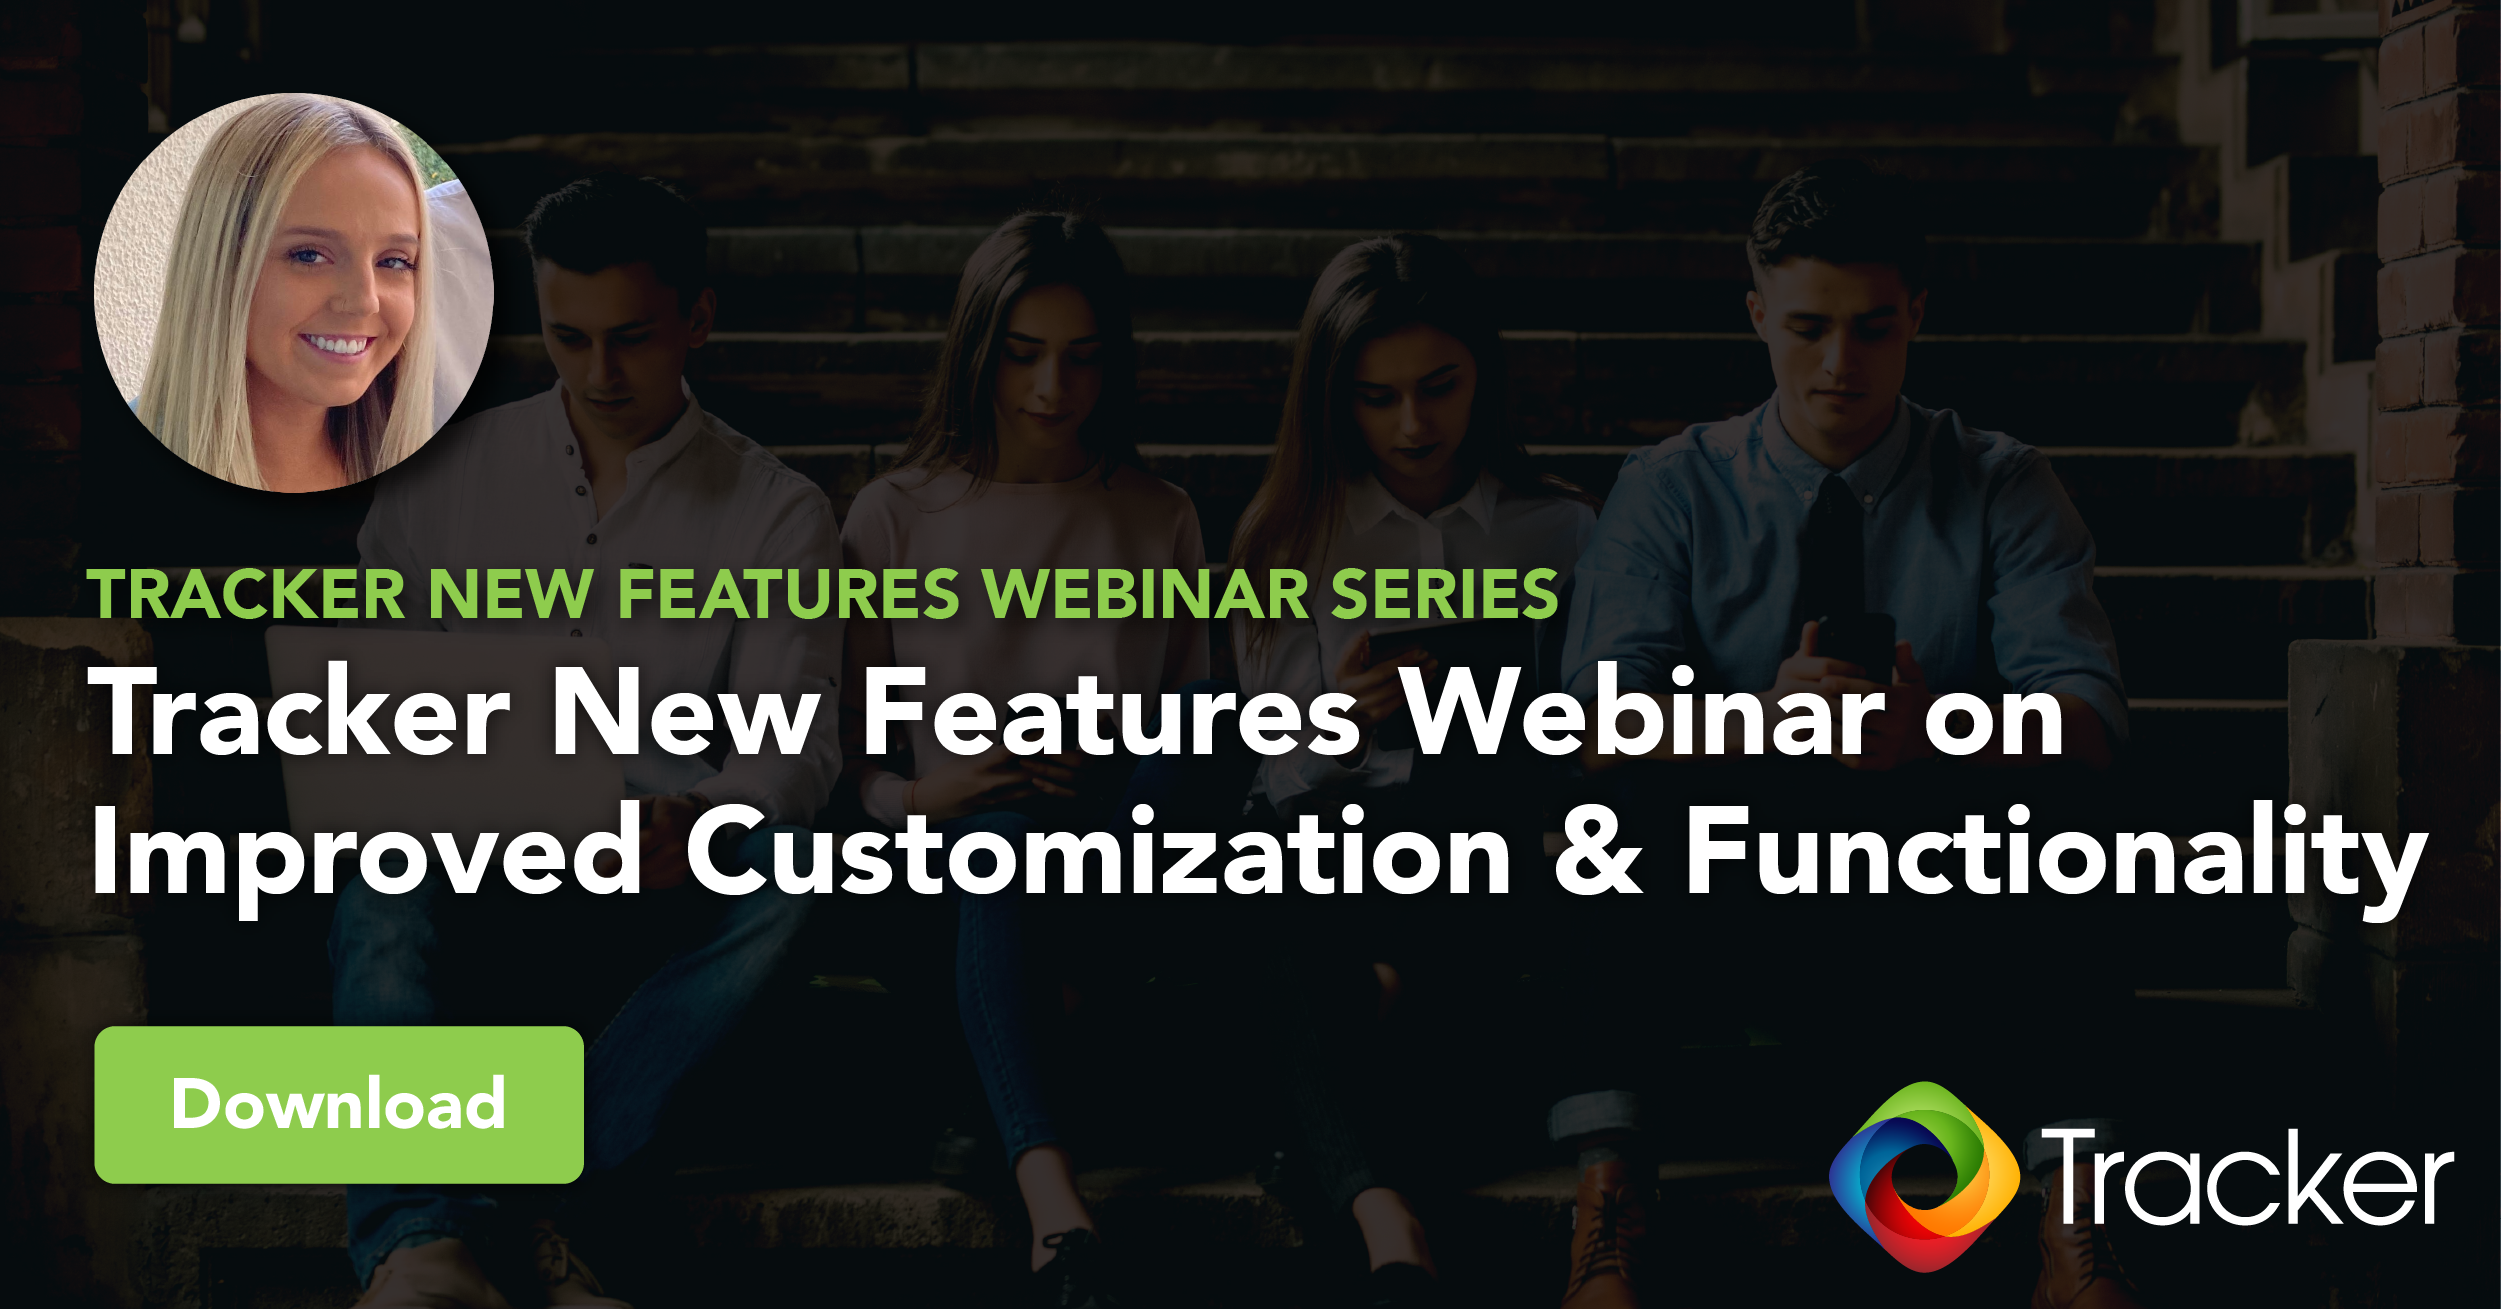 Tracker webinar on new customization and functionality features